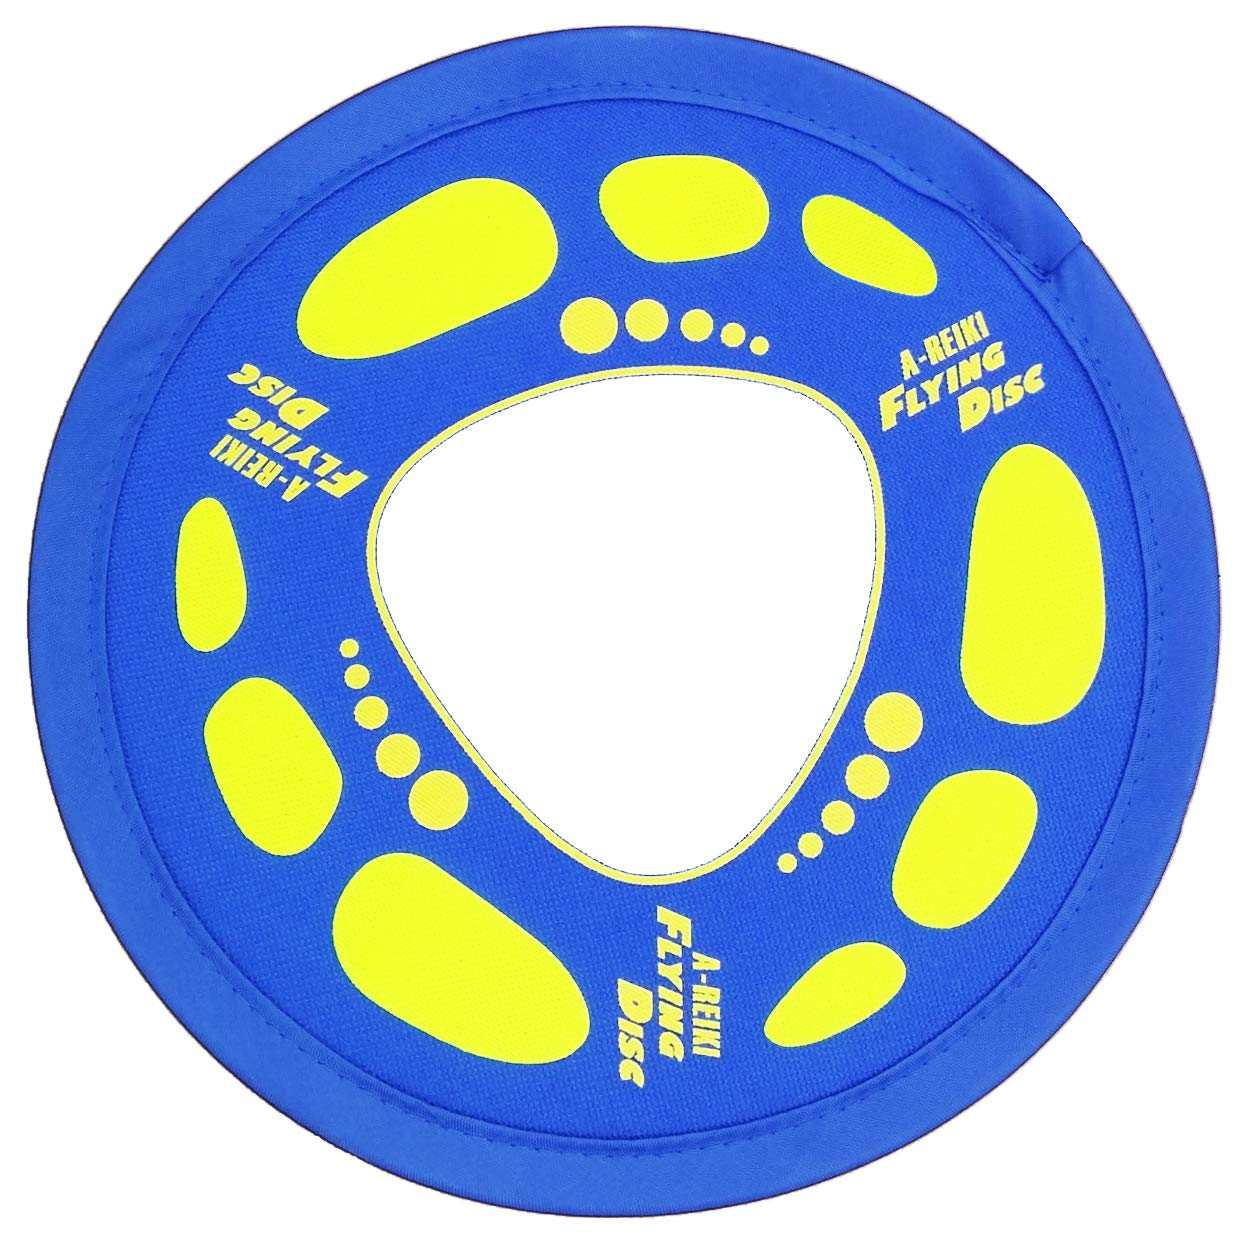 A-REIKI Flying Disc for Adult Kids Flying Ring Outdoor Play by A-REIKI